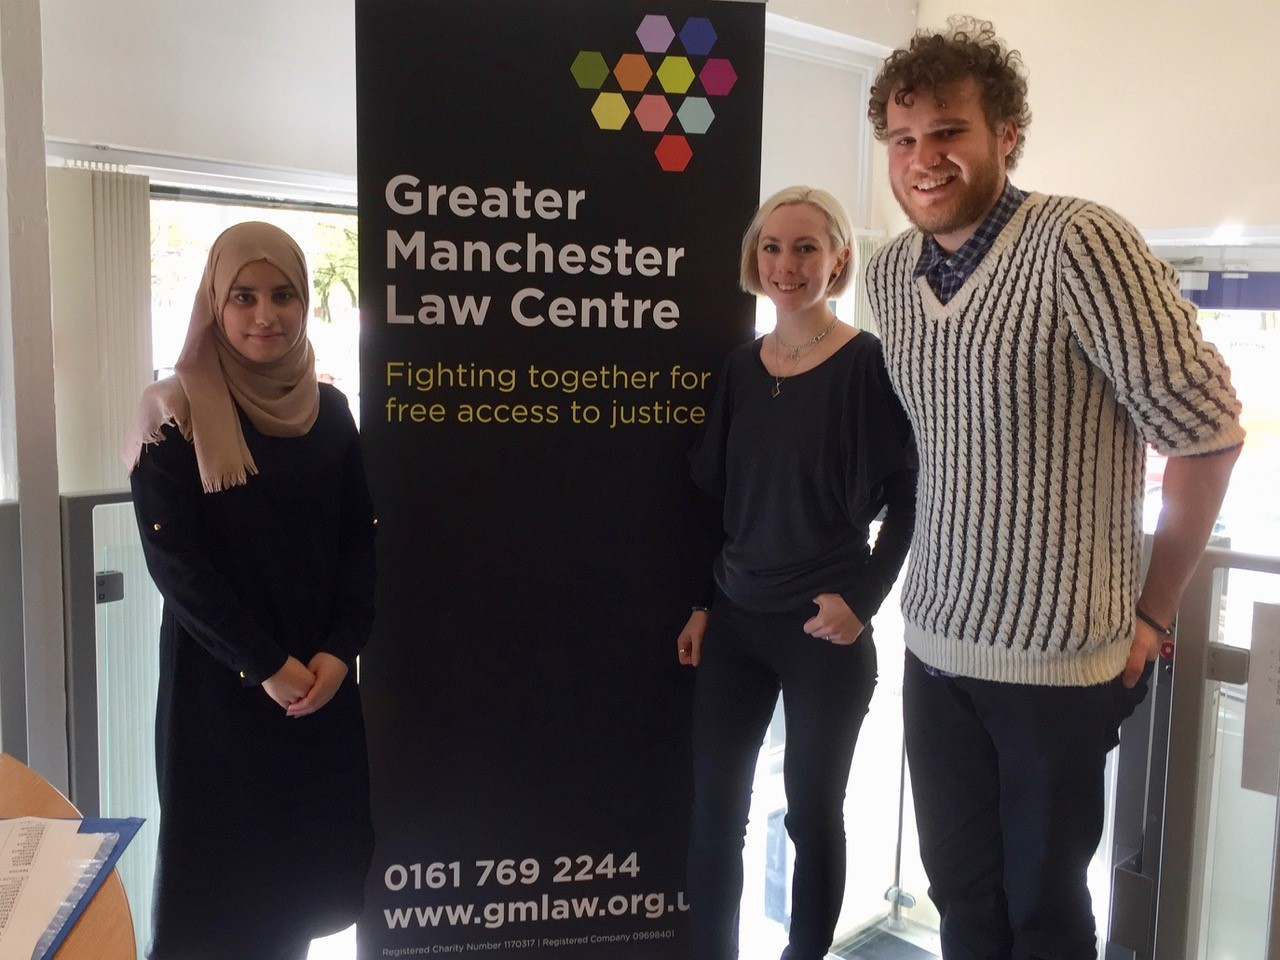 Providing free legal advice | The Greater Manchester Law Centre